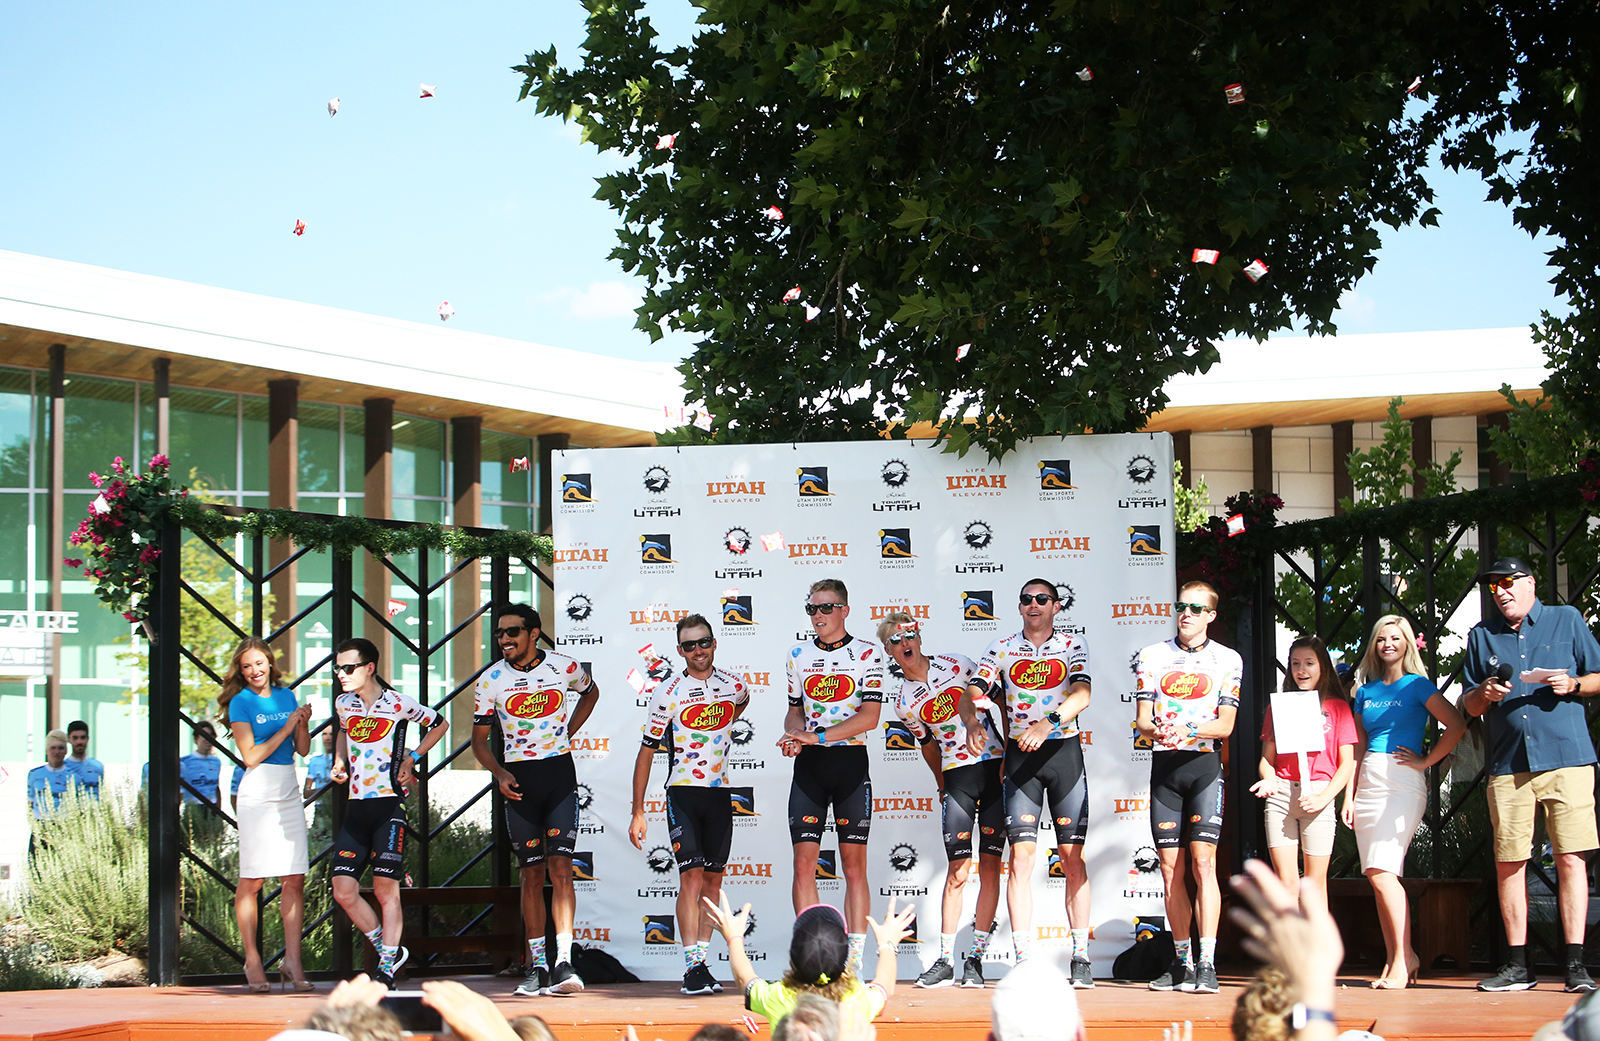 Making it rain with Jelly Belly - the team is always a Team Presenation favorite.  2018 Tour of Utah Team Presentation, August 4, 2018, Cedar City, Utah. Photo by Cathy Fegan-Kim, cottonsoxphotography.net